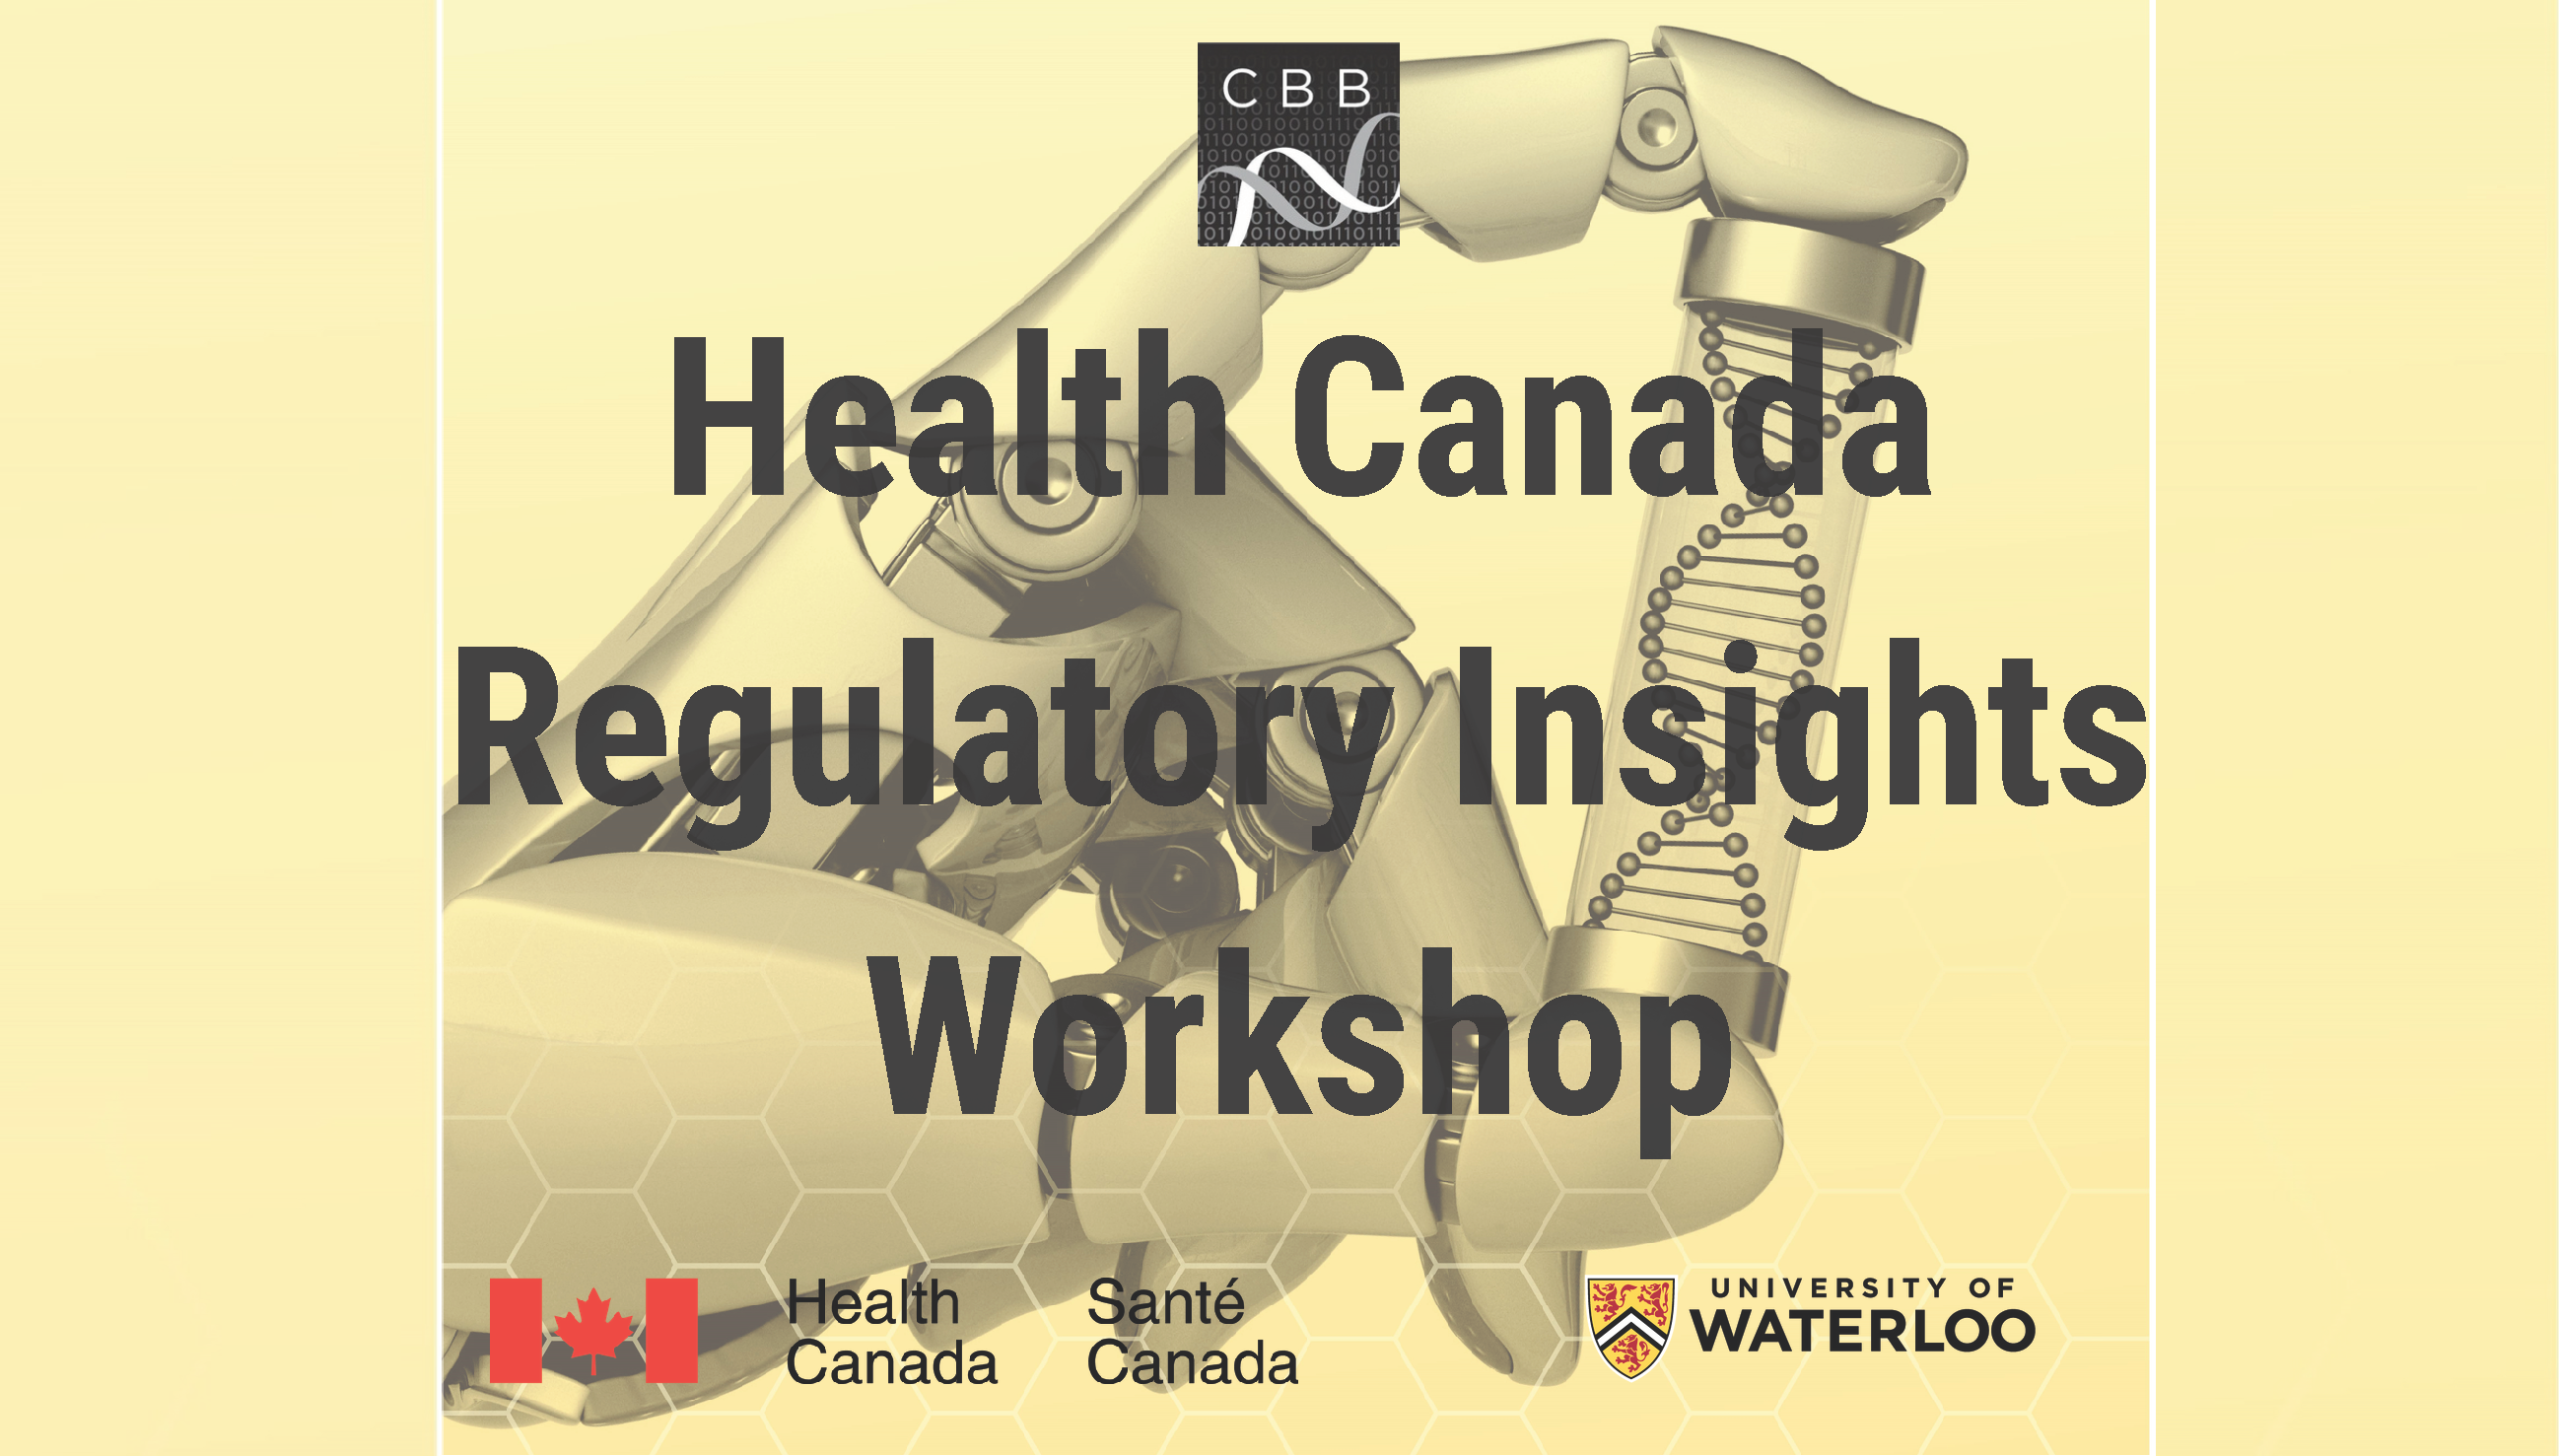 Health Canada Regulatory Insights Workshop event banner